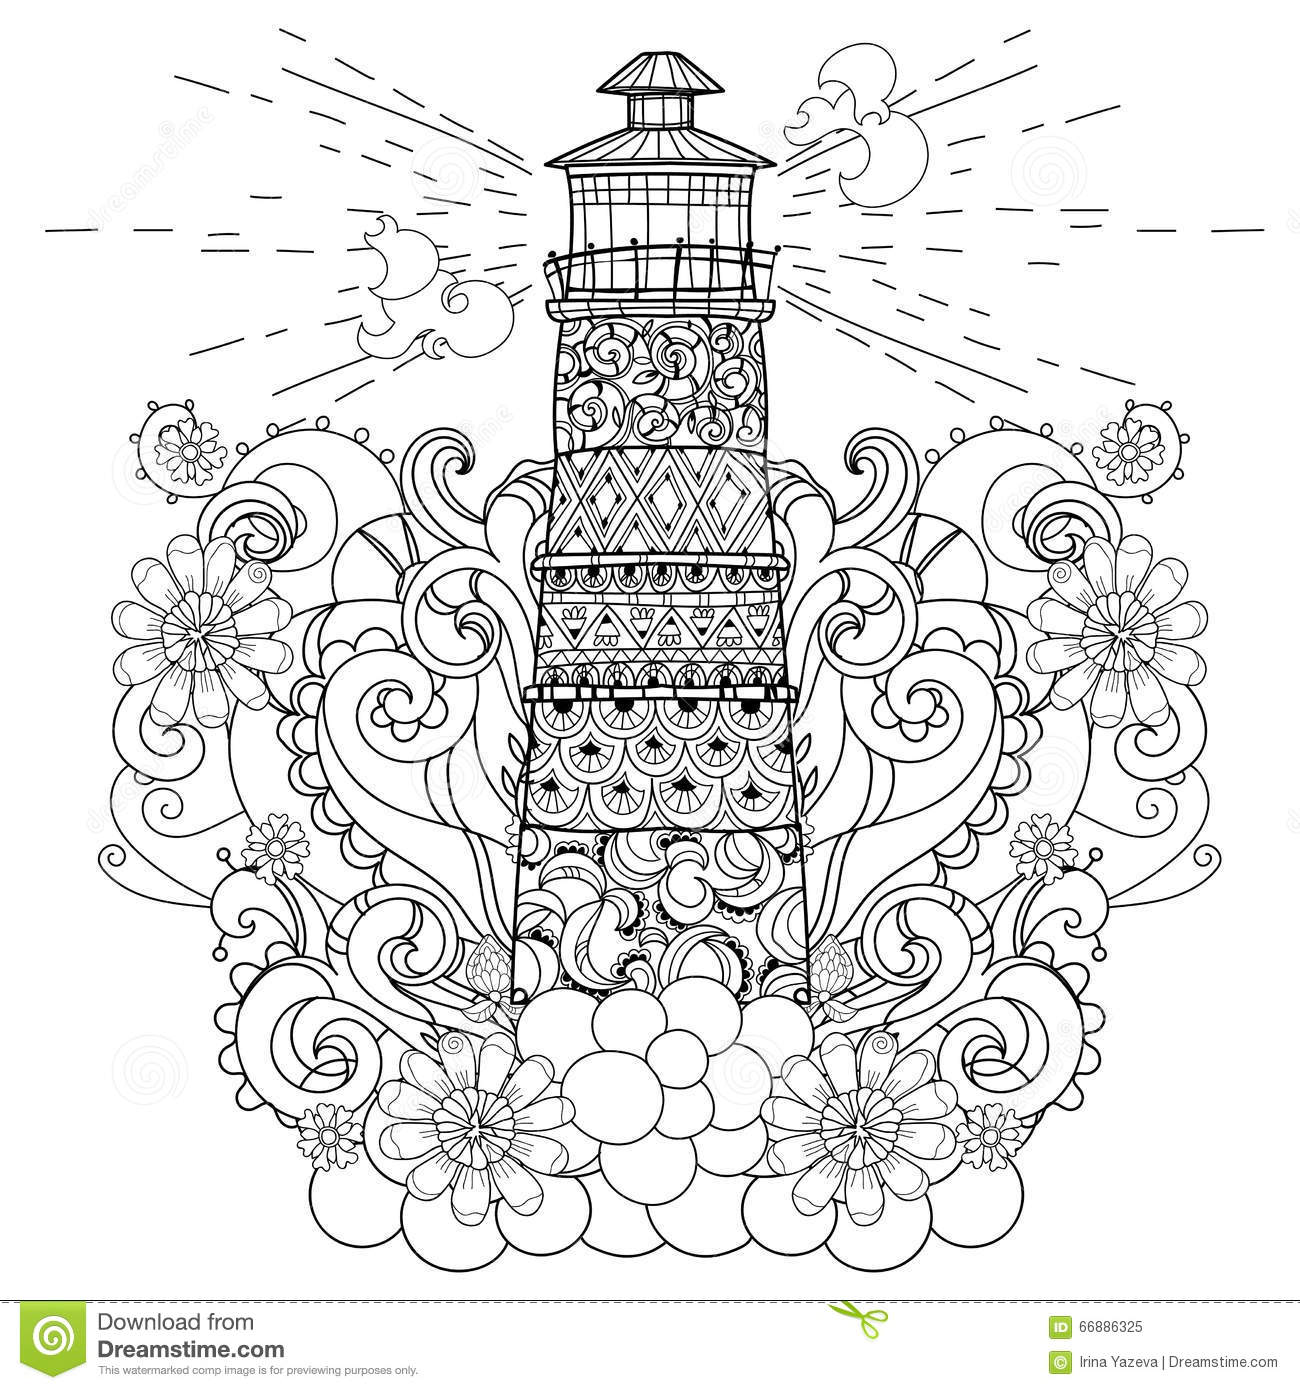 06 furthermore Stock Illustration Hand Drawn Doodle Outline Lighthouse Boho Decorated Floral Ornaments Vector Zentangle Illustration Floral Ornament Sketch Image66886325 further 79 Exciting 1200 Square Foot House Plans furthermore Royalty Free Stock Images Set Cartoon Lighthouses Icons Pencil Drawing Image38161369 in addition The Bungalow House And America An Old Passion Reawakened. on vintage style house plans